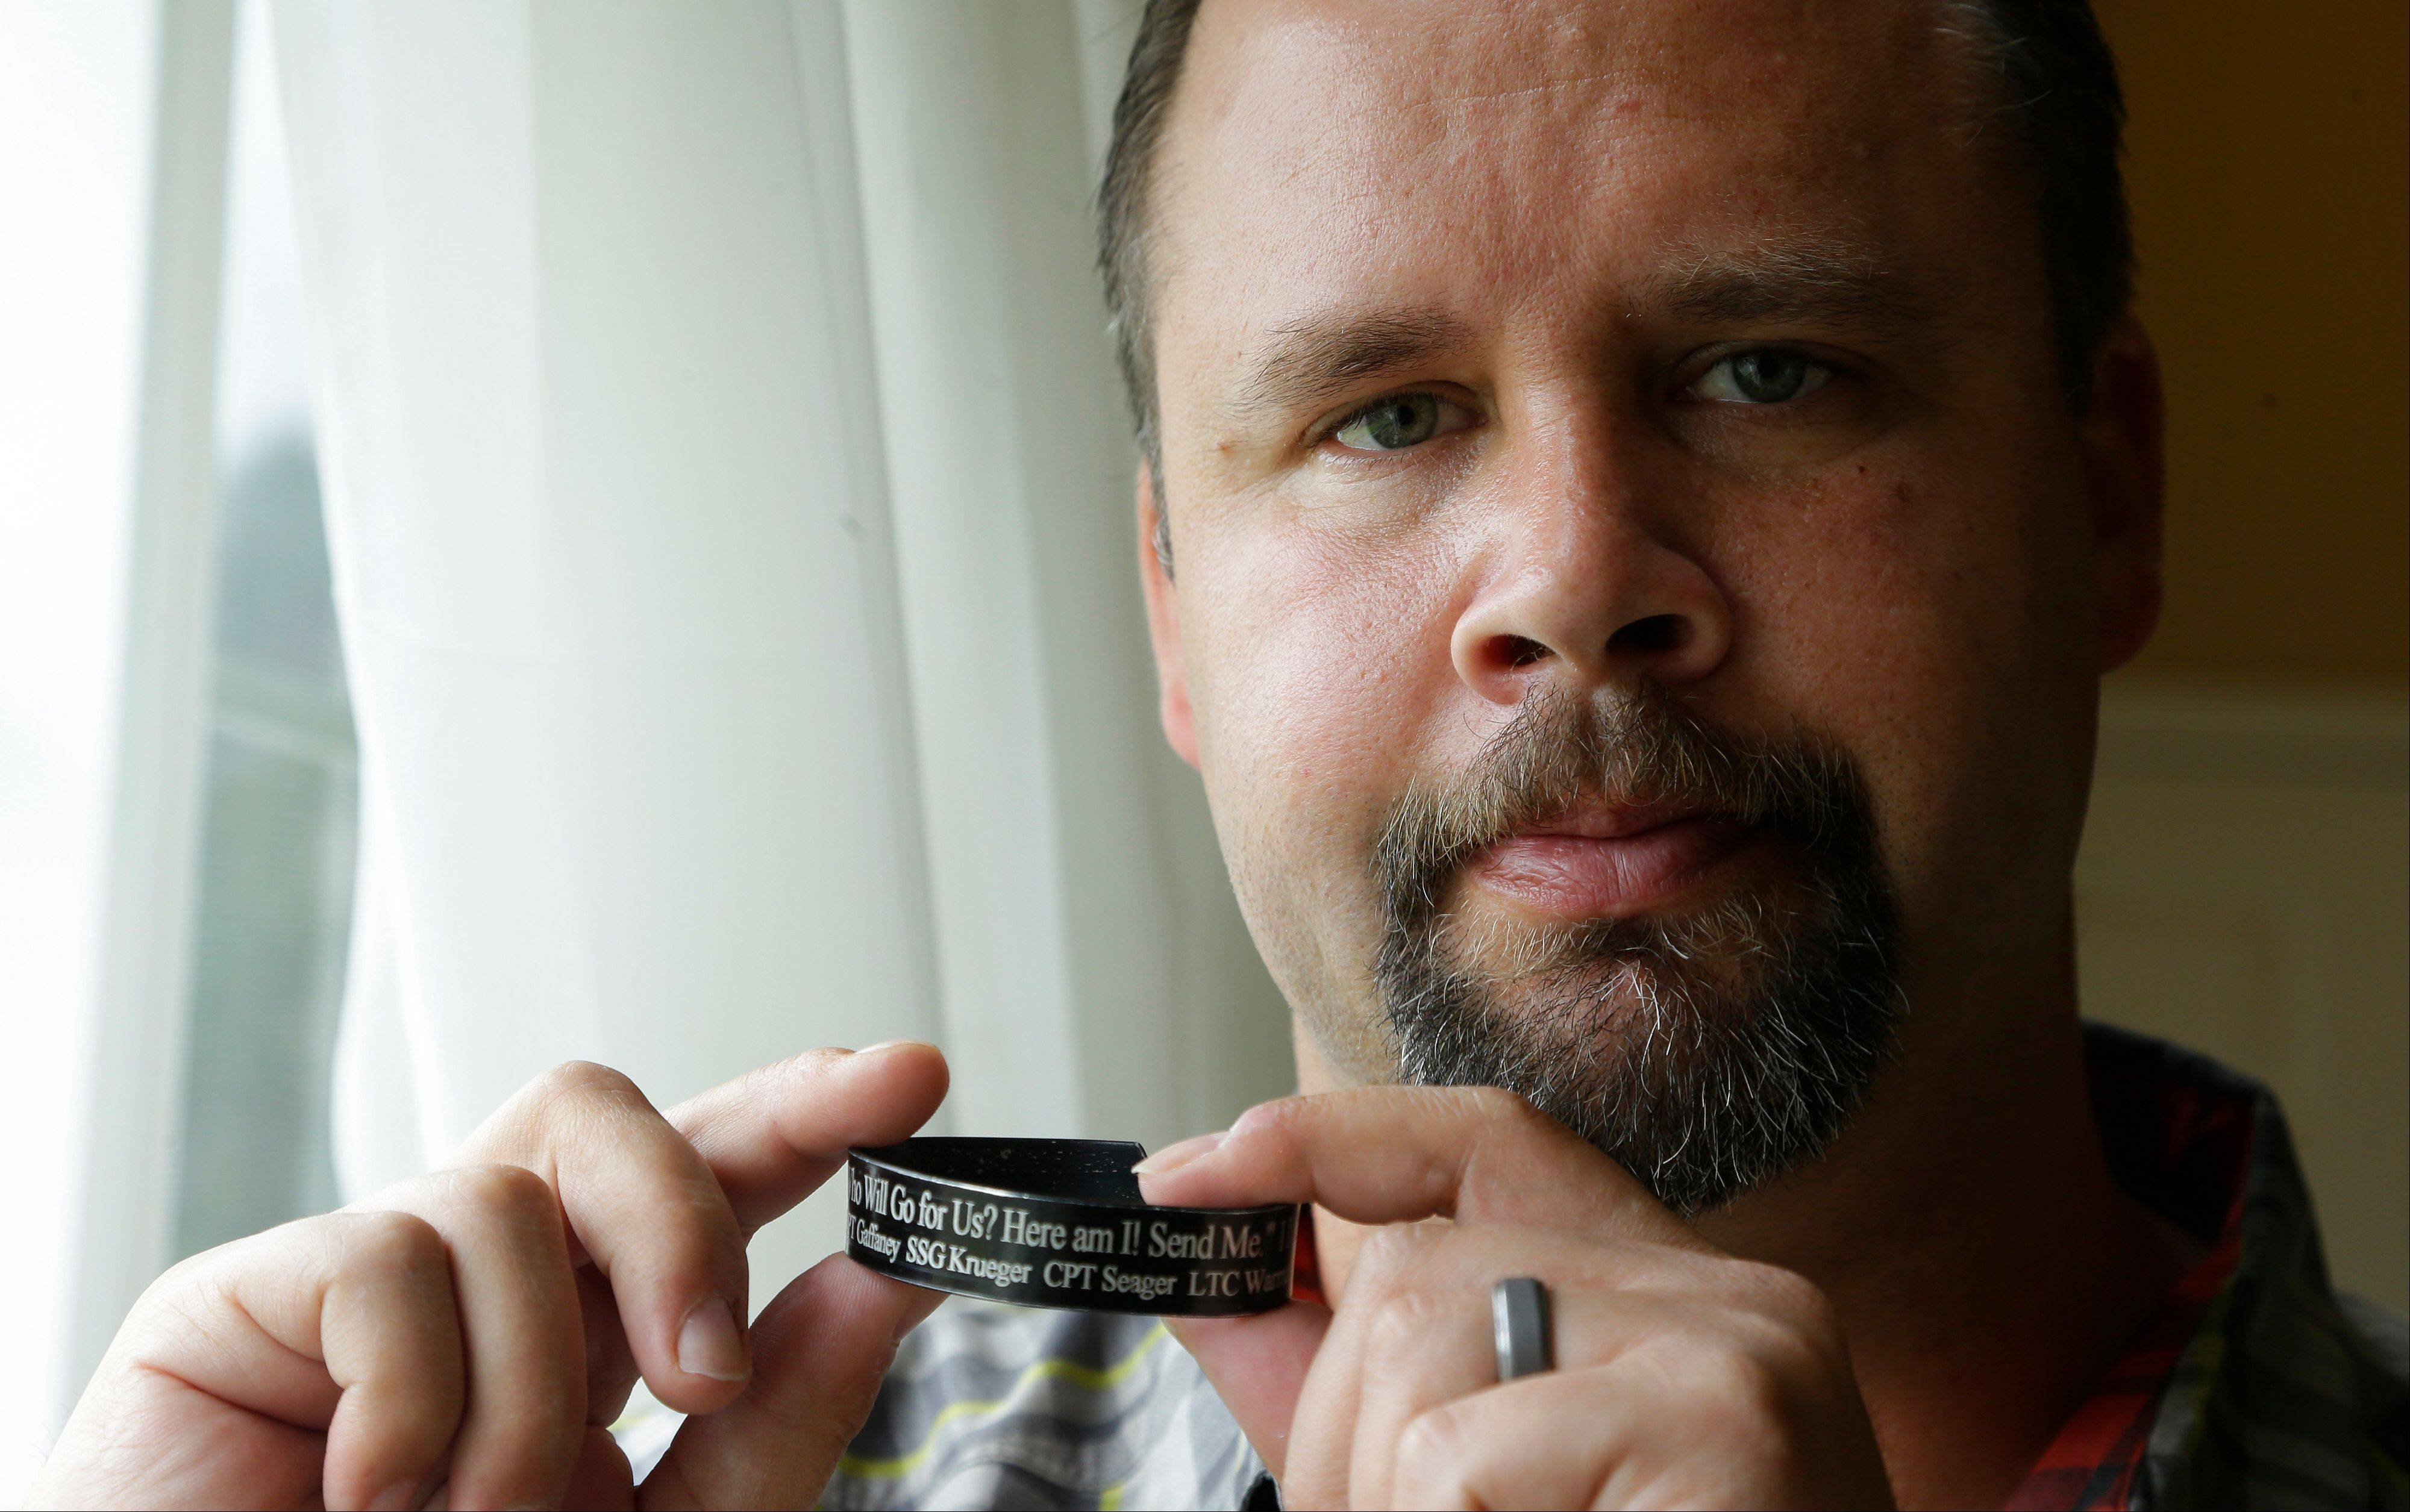 In this Saturday, Aug. 3, 2013, photo, retired U.S. Army Staff Sgt. Shawn Manning poses for a photo, at his home in Lacey, Wash., as he holds a memorial bracelet for members of his military unit who were killed in a 2009 mass shooting at Fort Hood, Texas. Manning, who still carries two bullets in his body from the shooting that killed 13 people, is scheduled to testify at the court martial for Maj. Nidal Malik Hasan, the accused shooter this week.